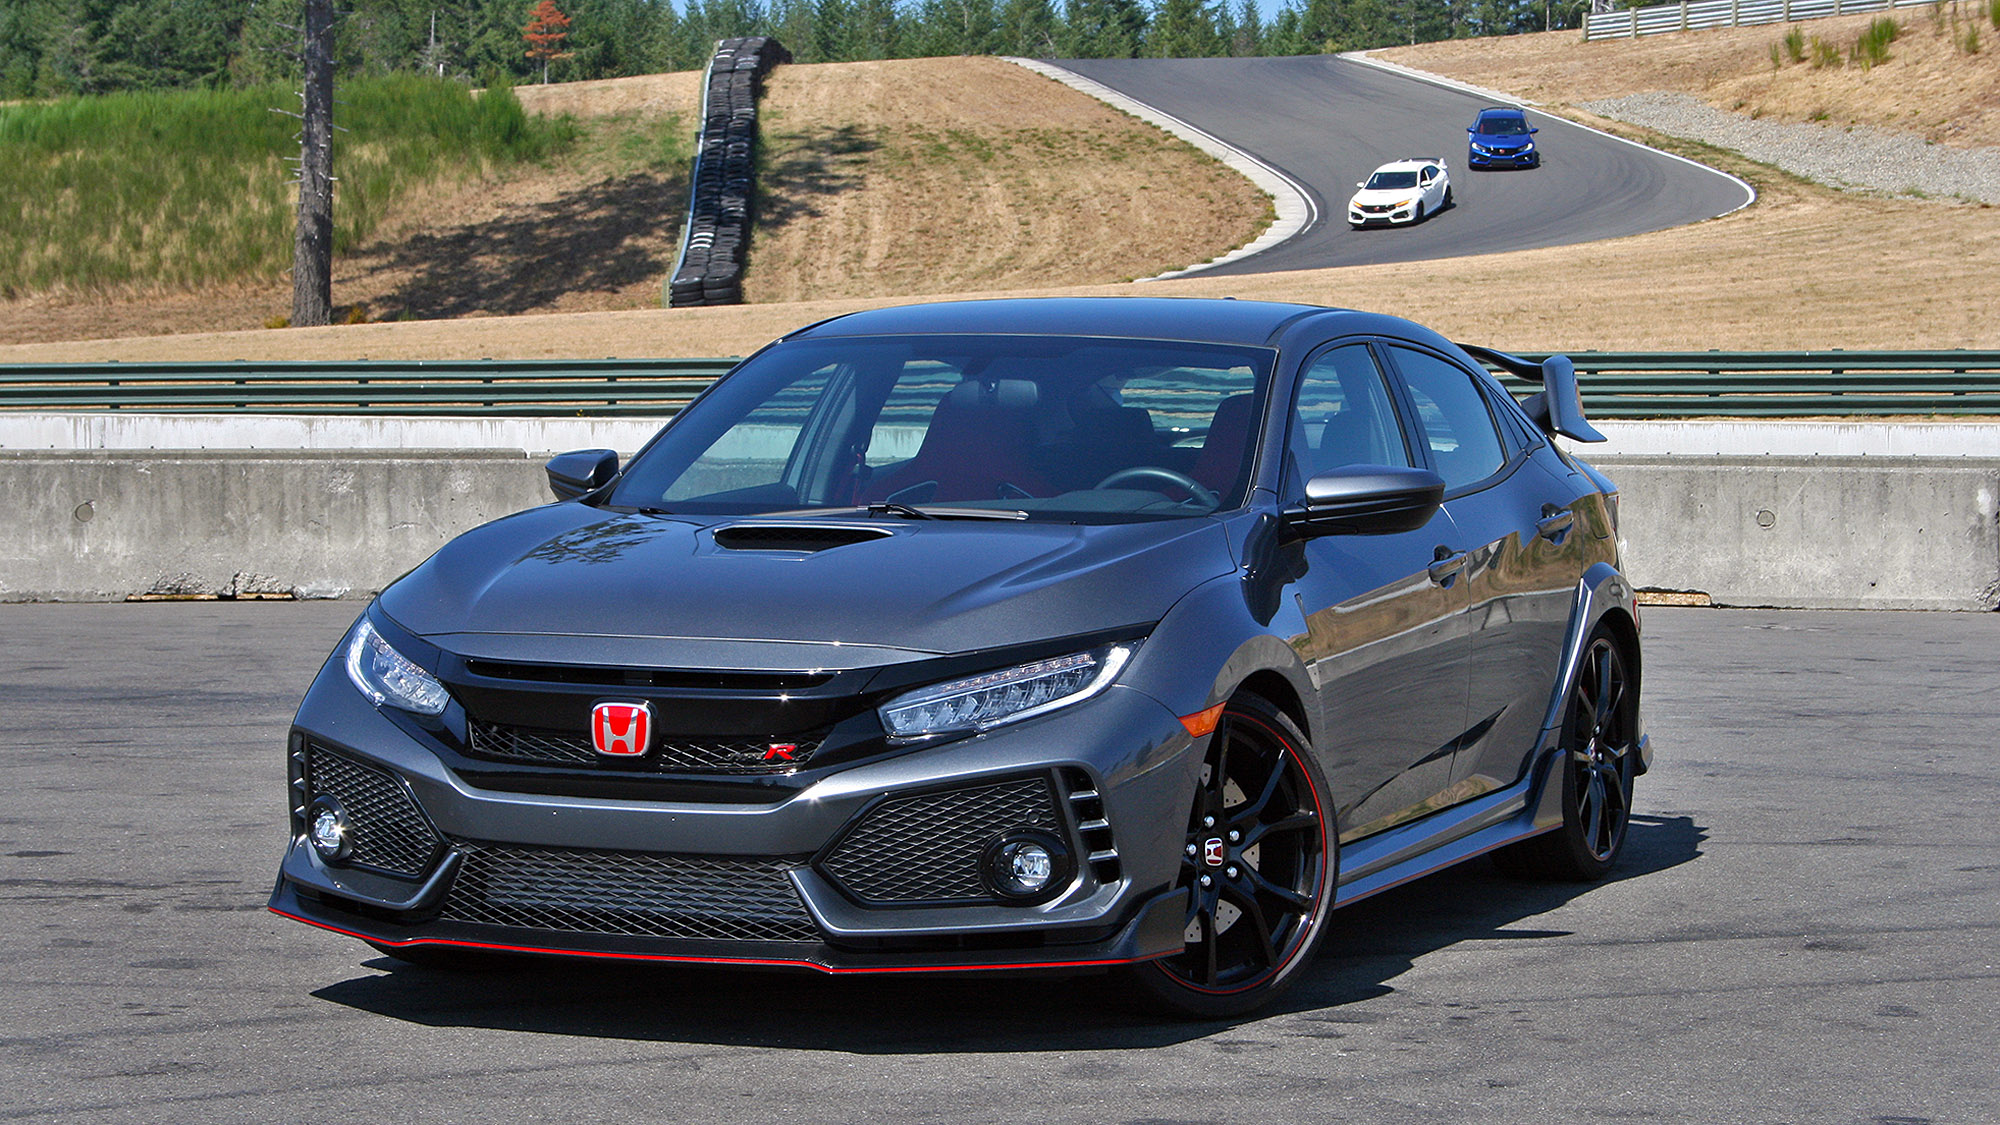 hight resolution of honda civic latest news reviews specifications prices photos and videos top speed